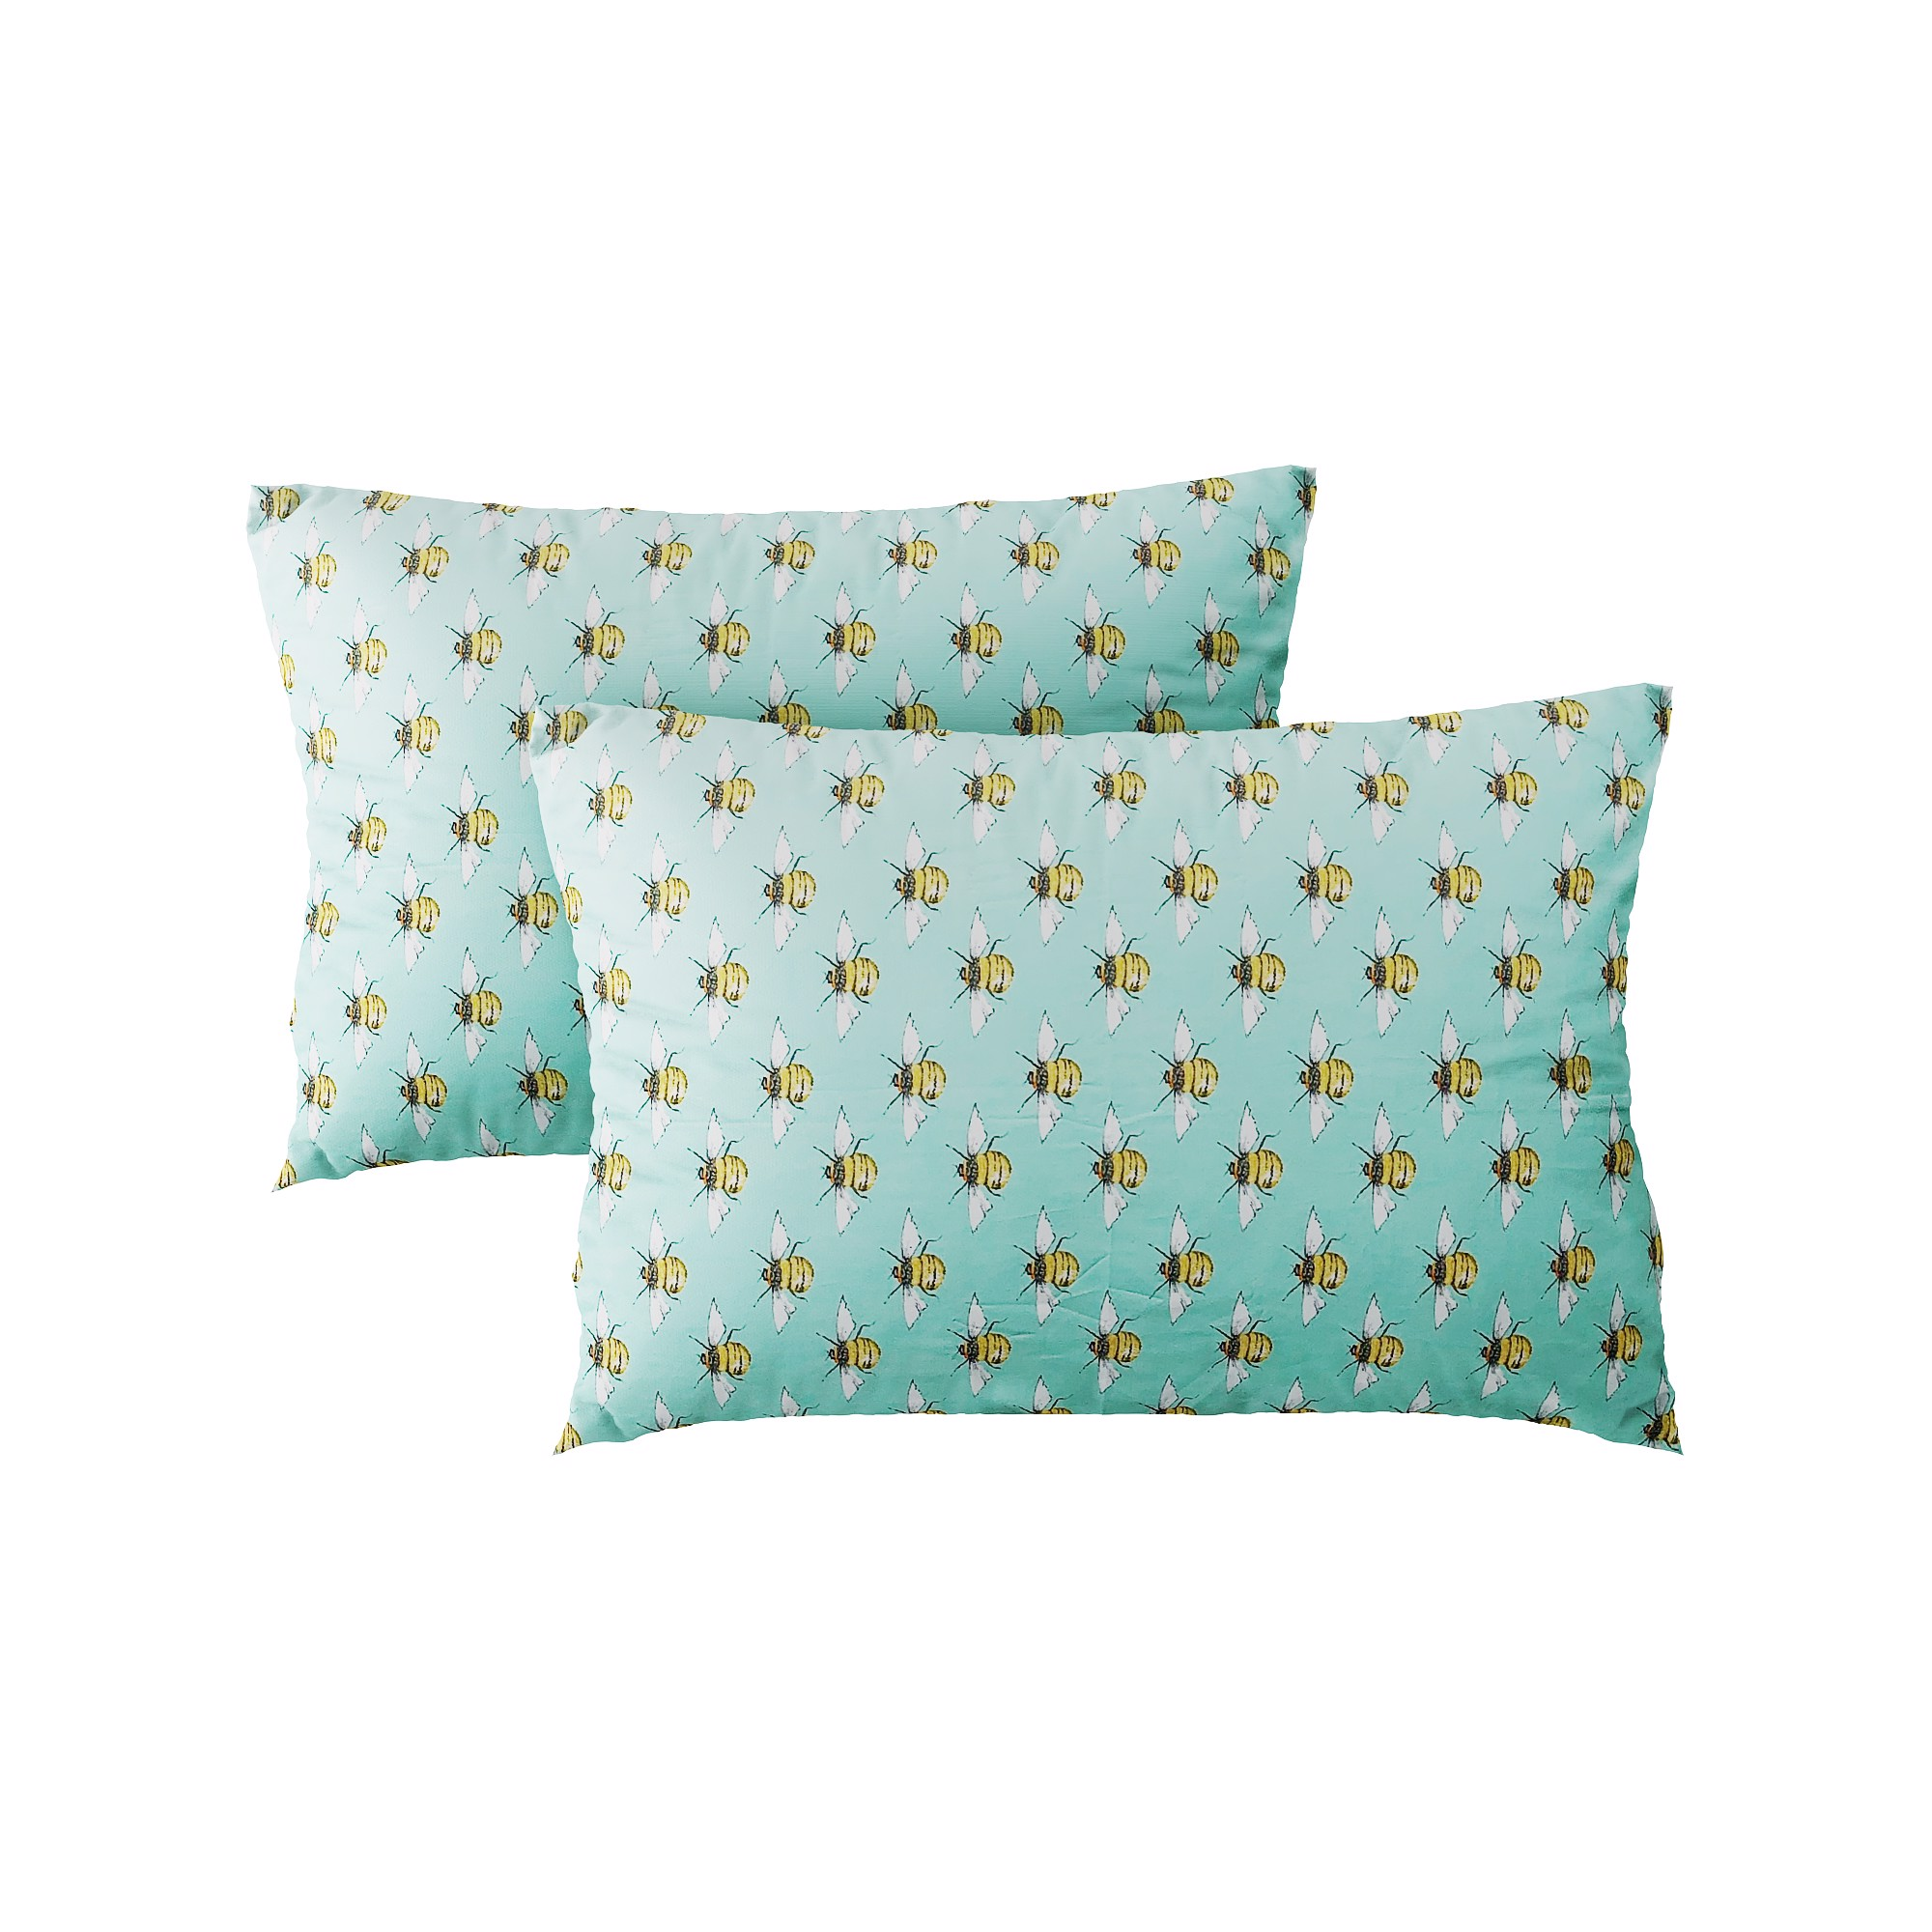 Pillow case 350 Yellow bee on mint (2pcs)